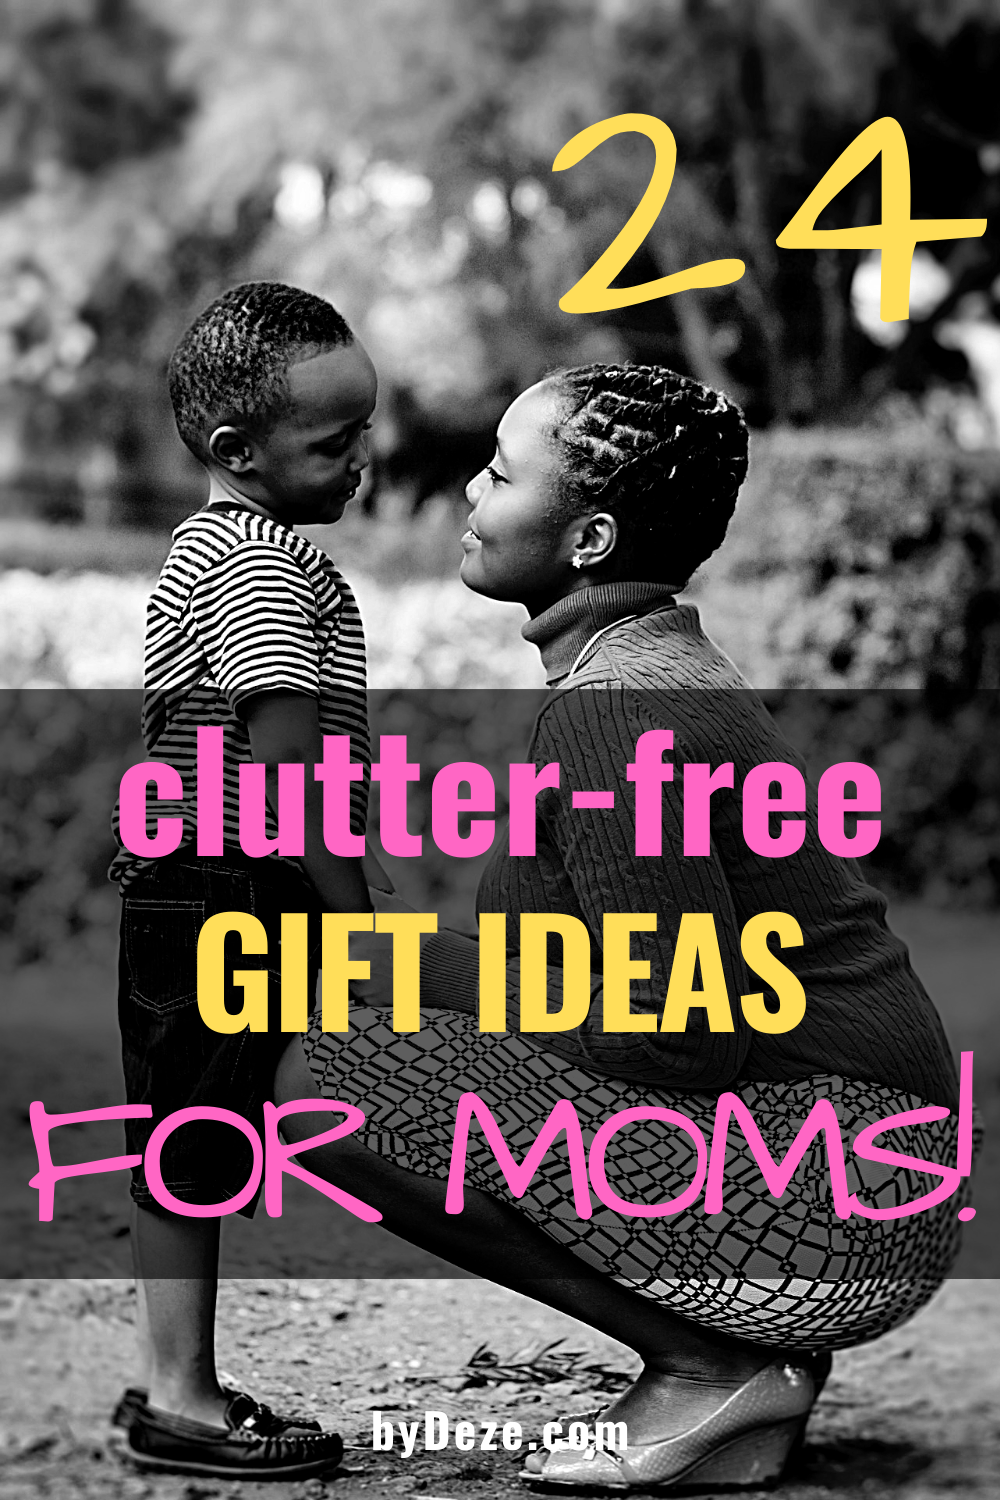 Mother's Gift Guide: For The Mom Who Doesn't Want More STUFF | Experience gifts, Gift guide ...